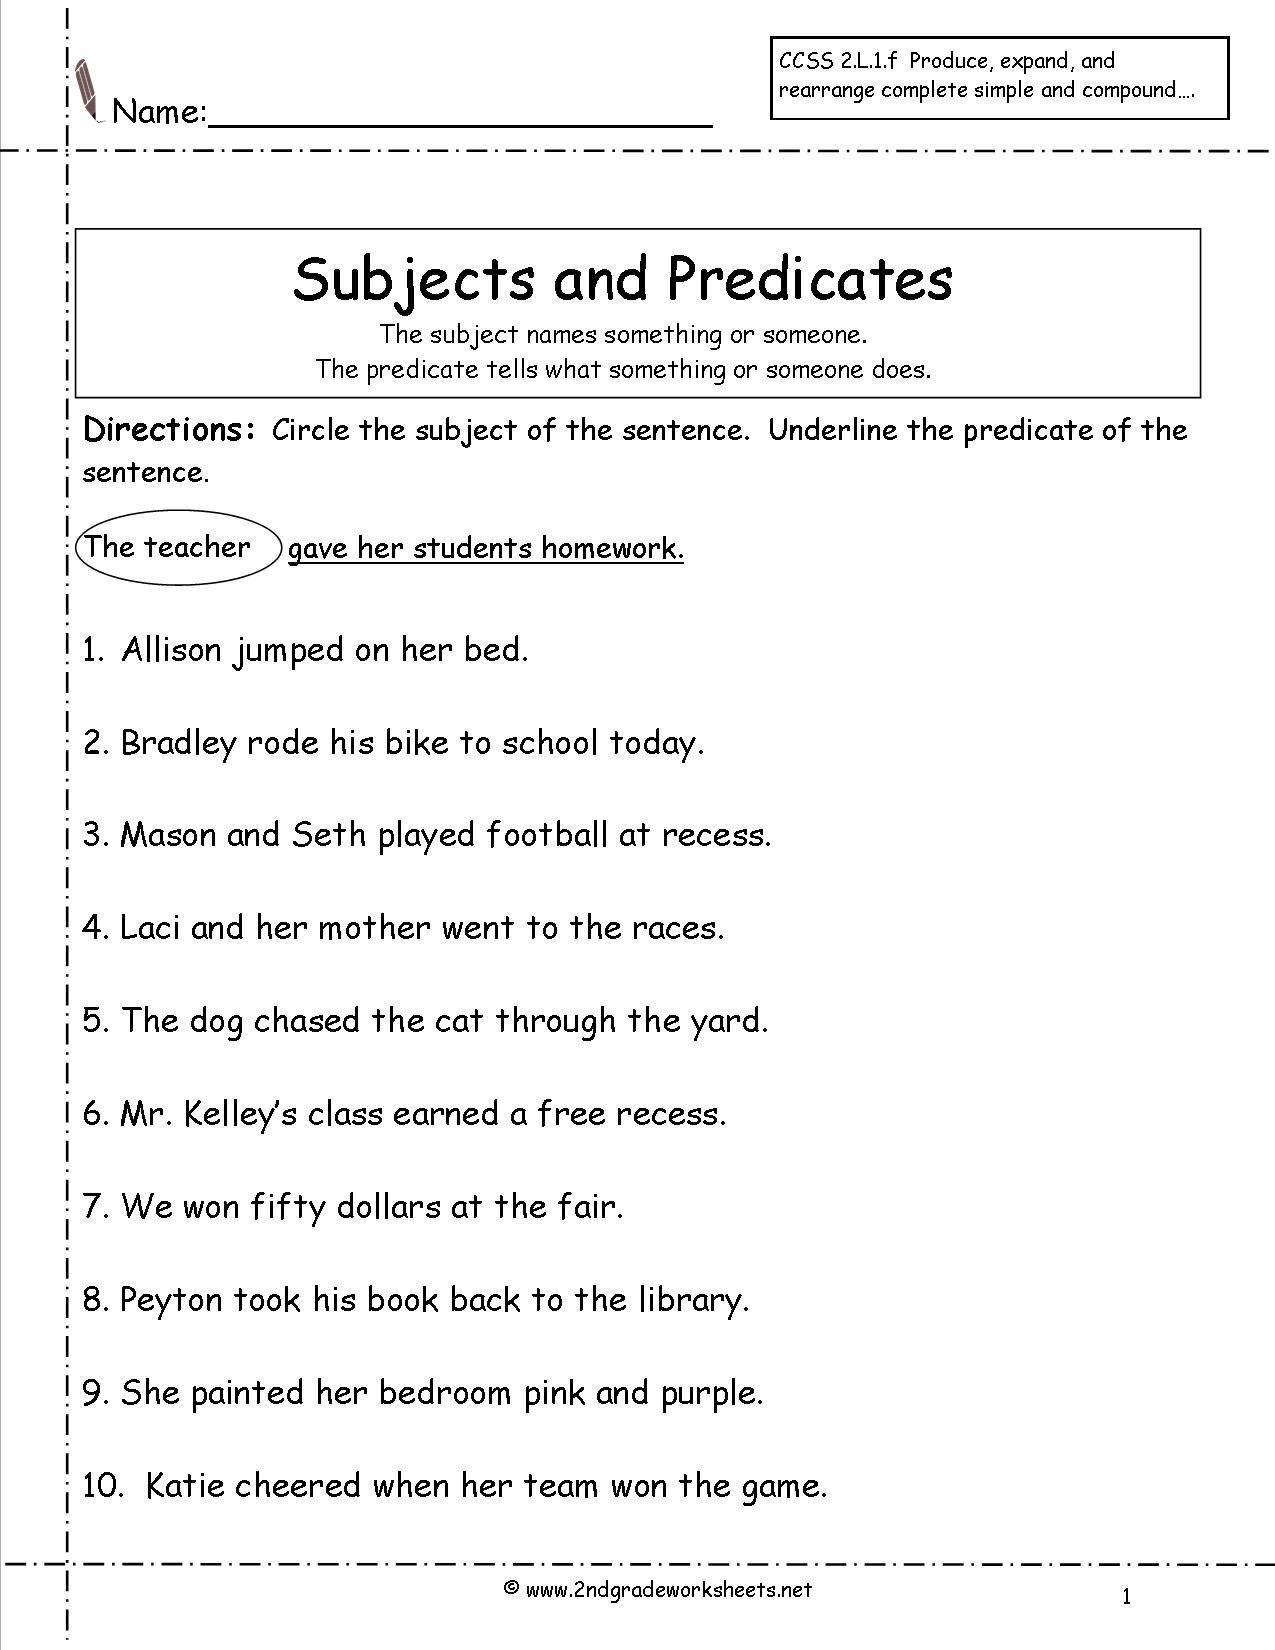 subject predicate worksheets 2nd grade - Google Search | 2nd grade ...